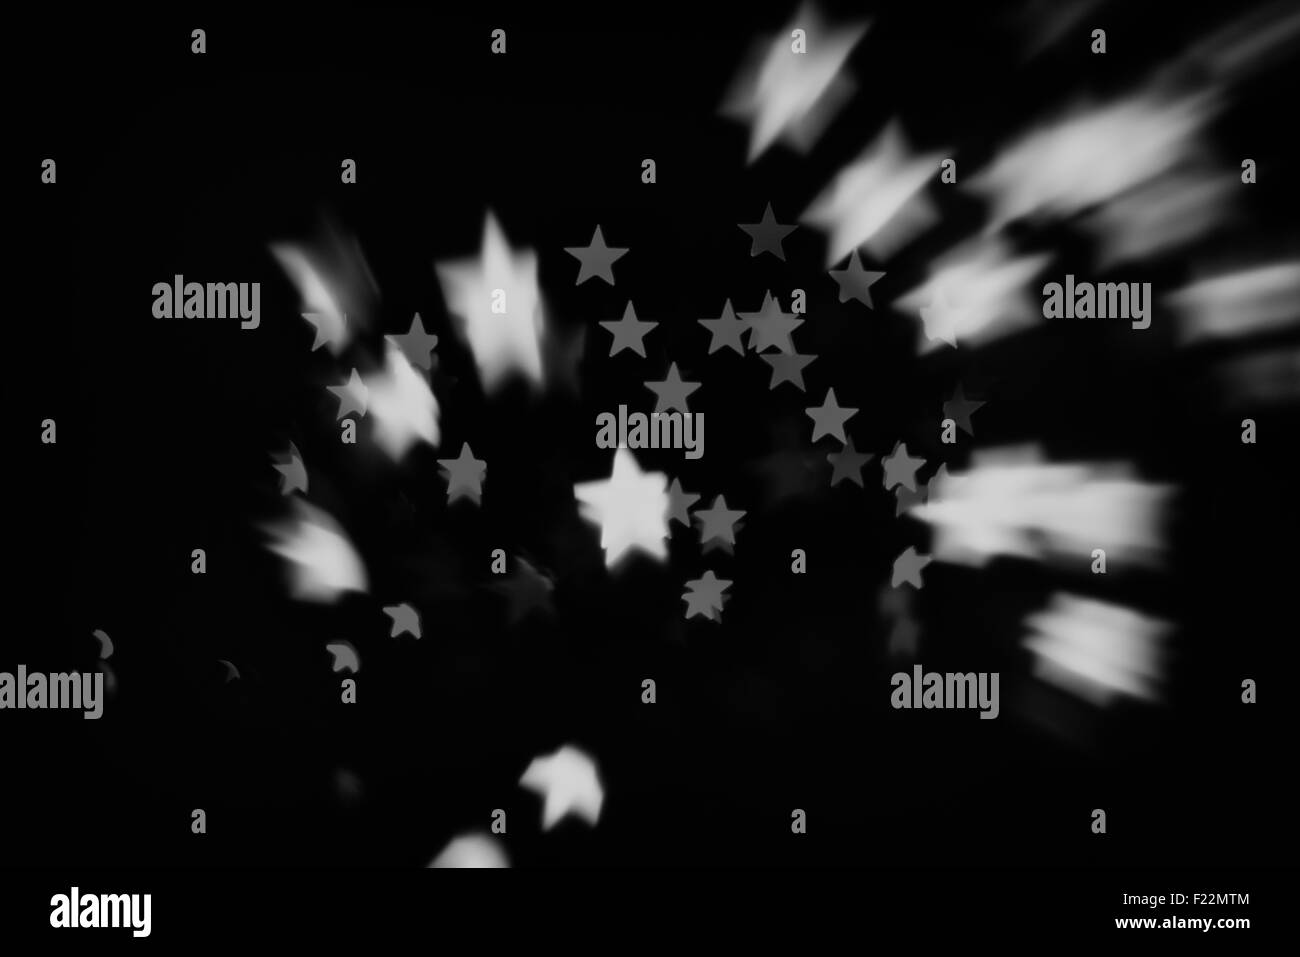 retro black and white stars in space (stars abstract blur background) - Stock Image